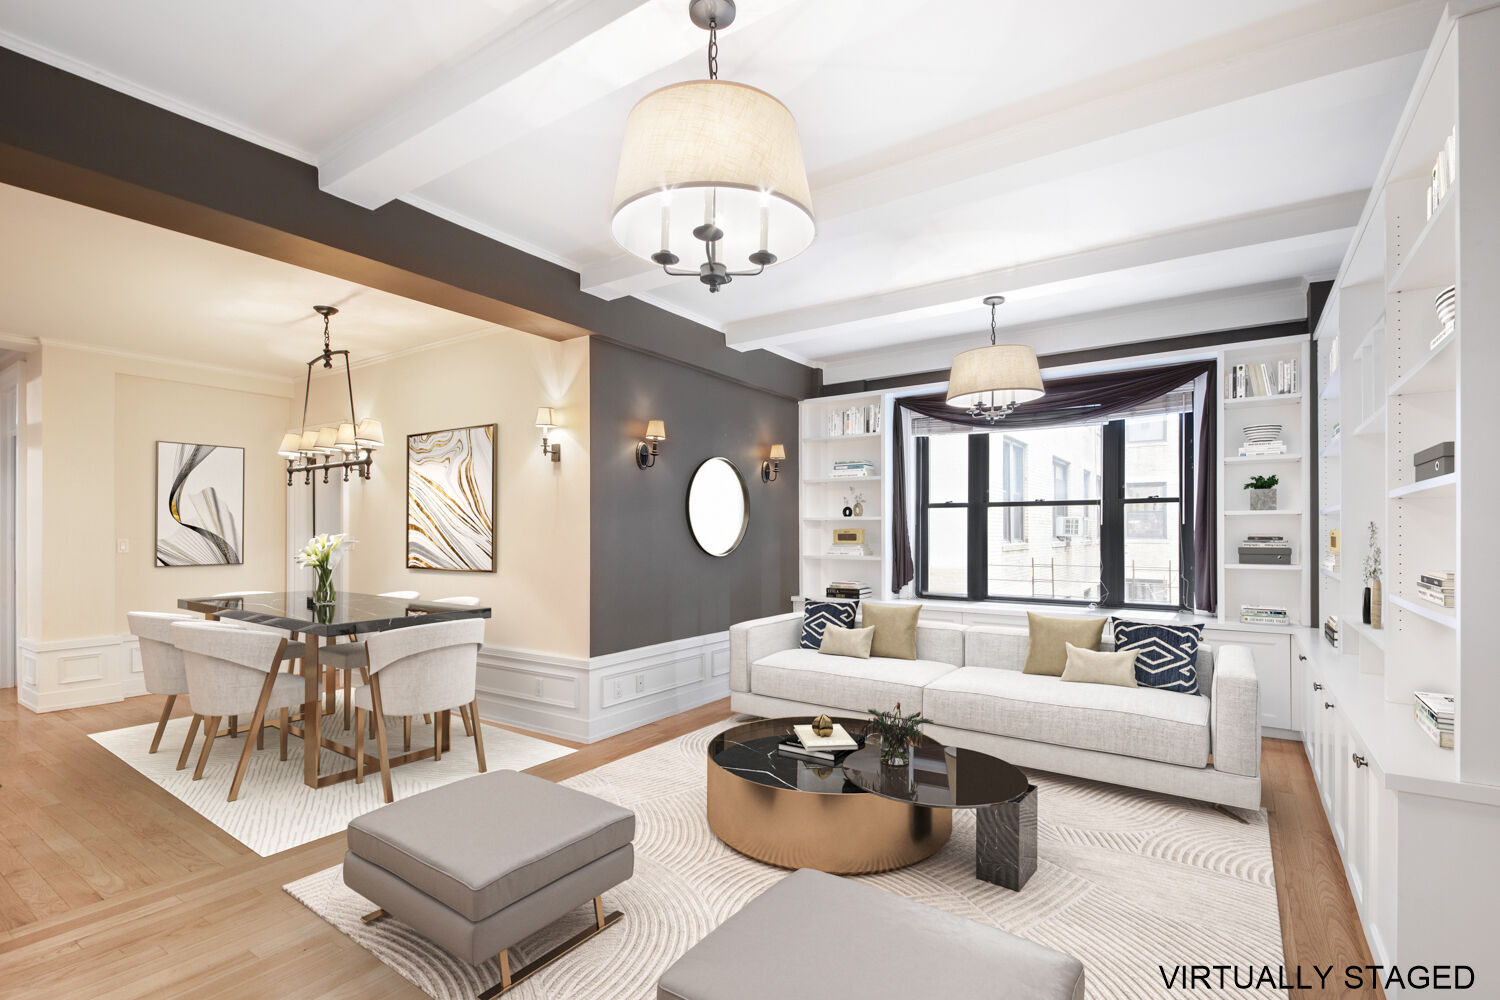 Apartment for sale at 252 West 85th Street, Apt 4-C